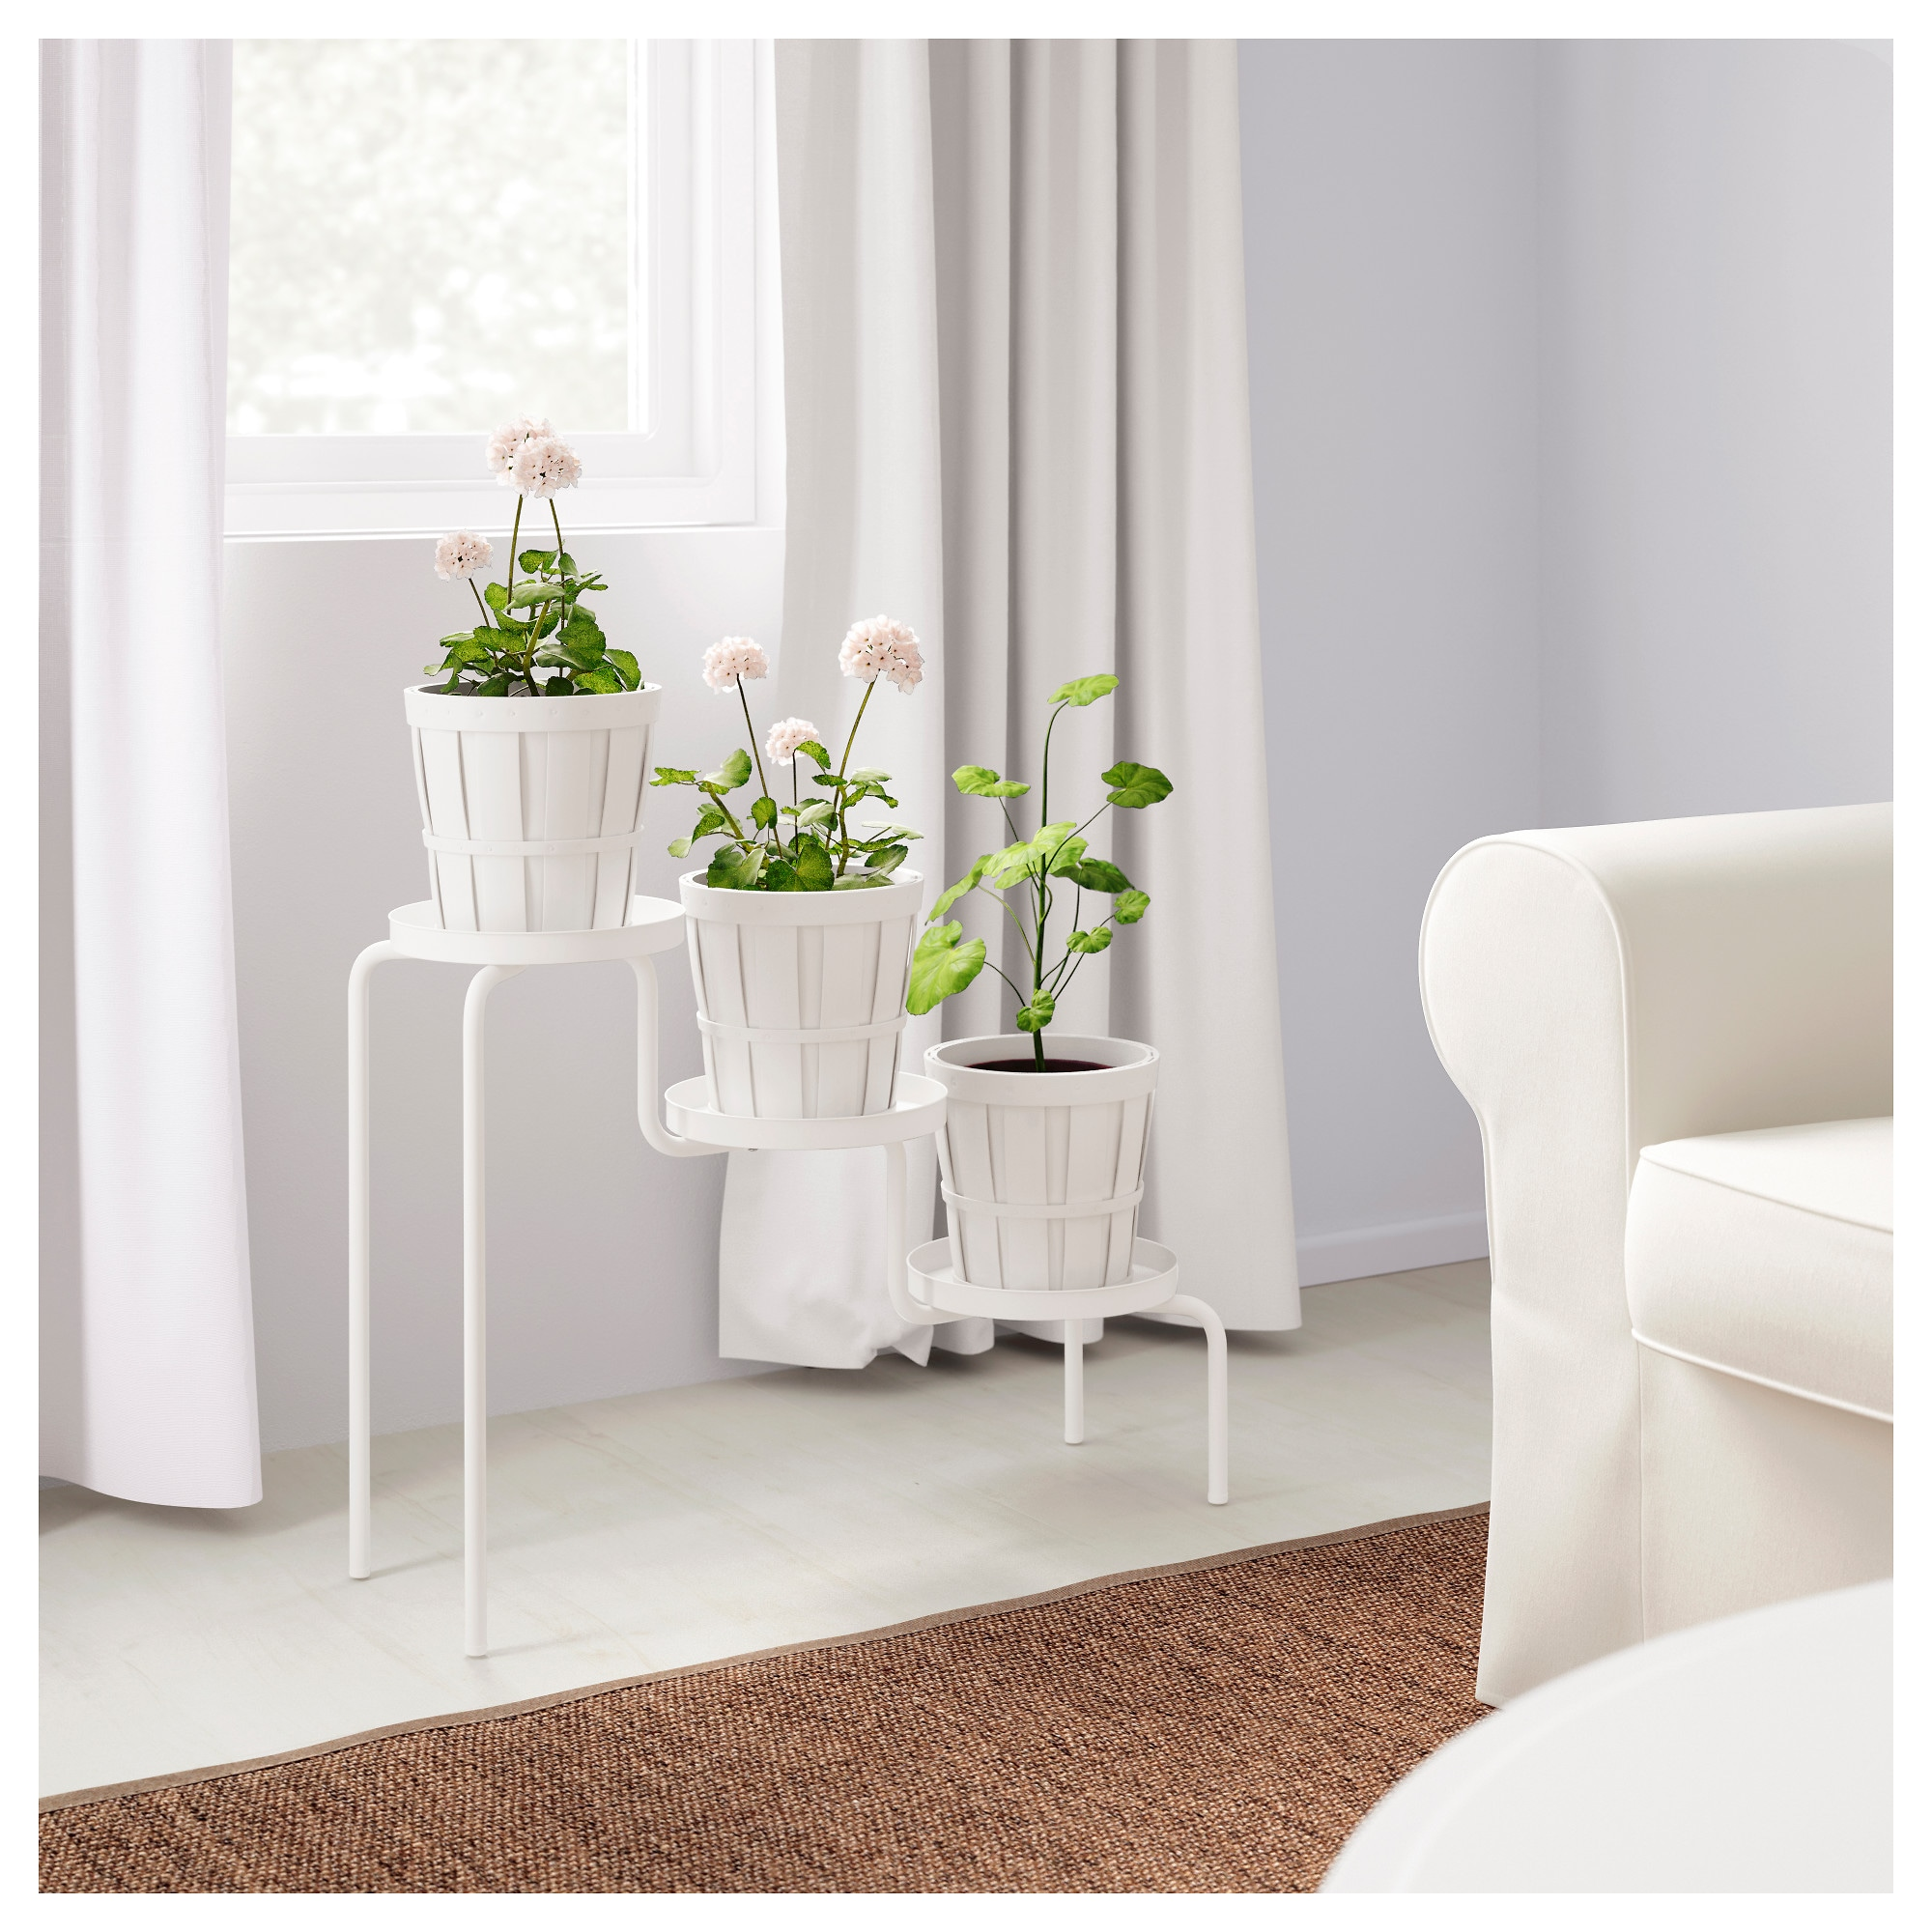 Design Plant Stands Indoor ikea ps 2014 plant stand ikea